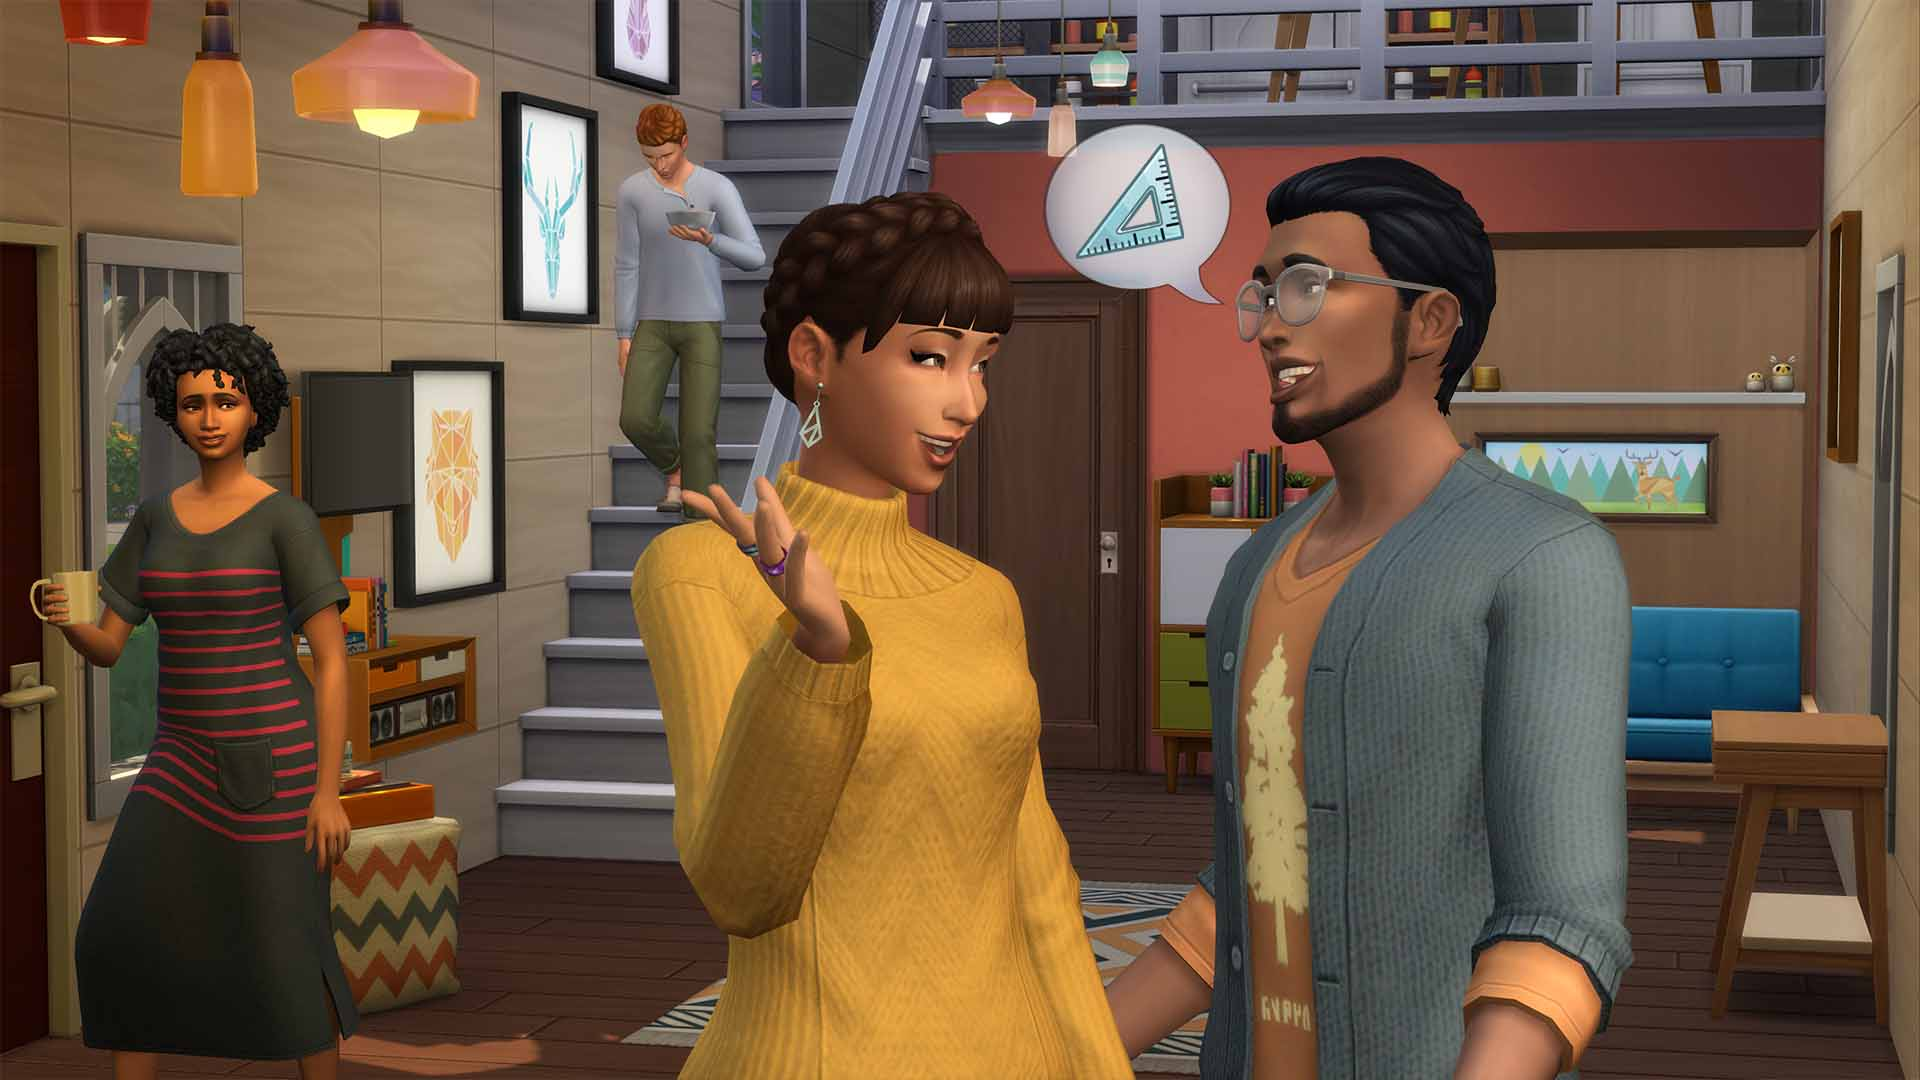 The Sims 4 Free Anniversary All in One Portable 1.61.15.1020 - The Sim Architect